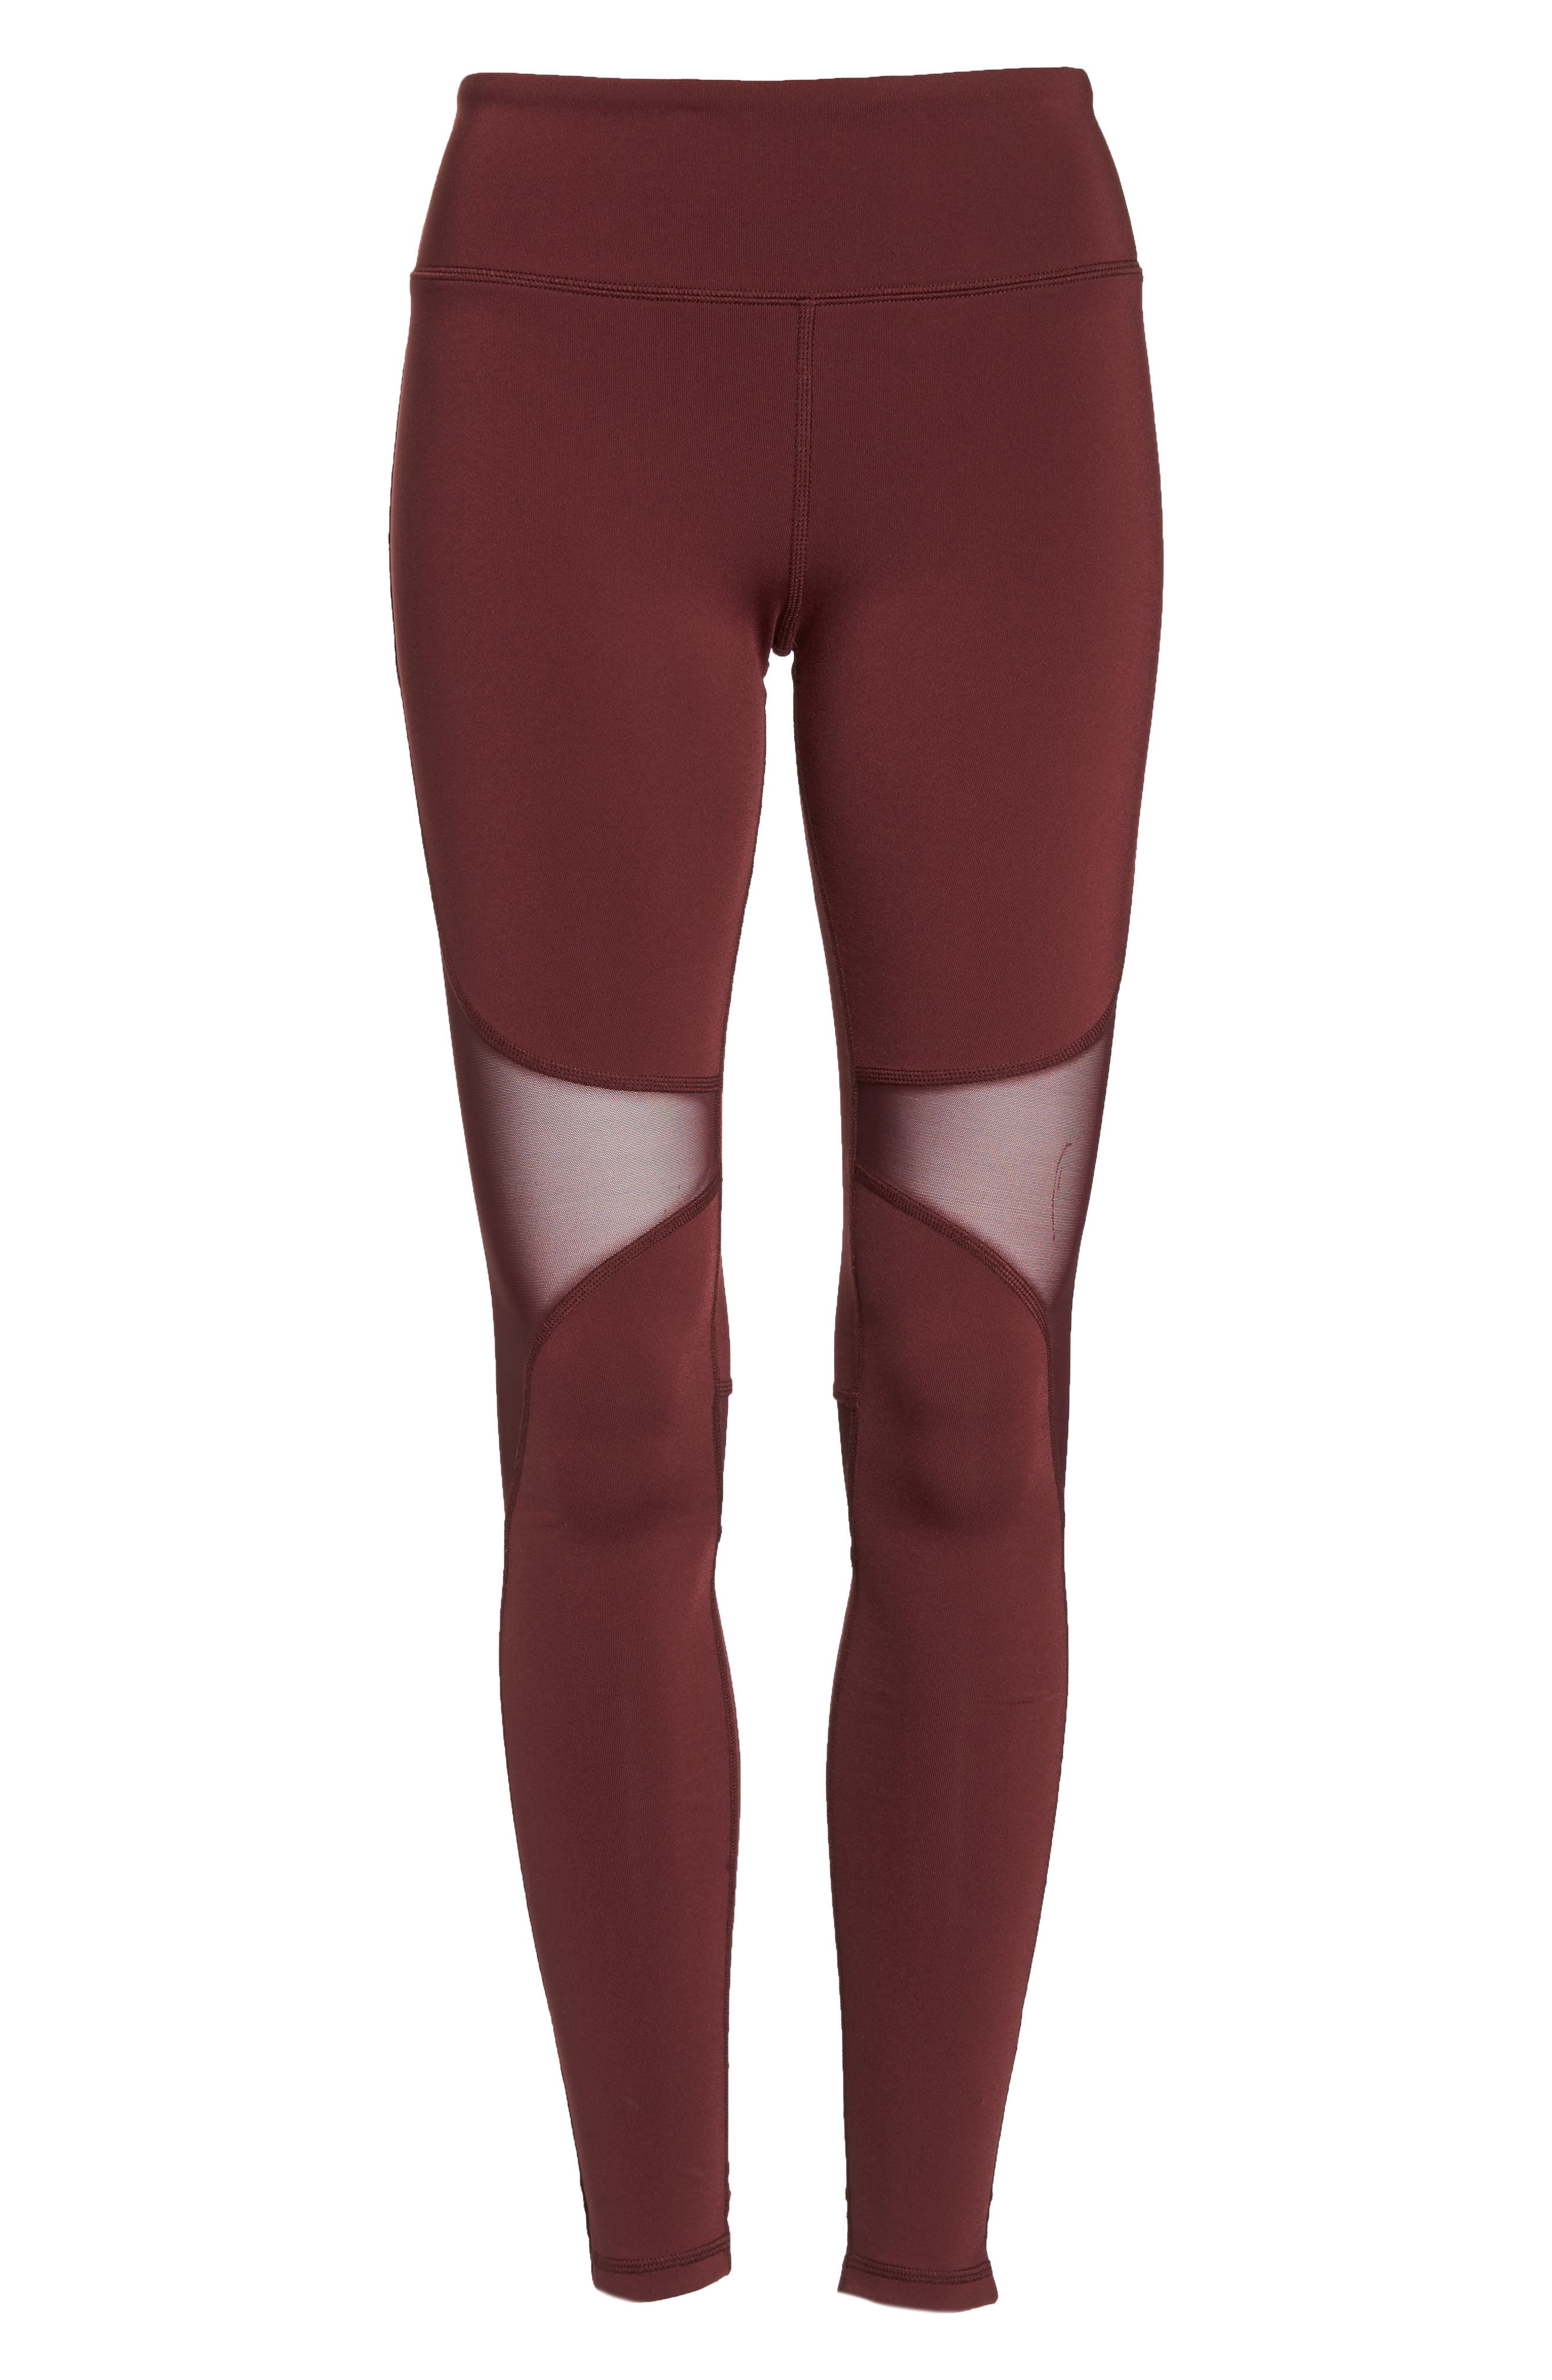 Coast High Waist Stirrup Leggings,                             Alternate thumbnail 7, color,                             936